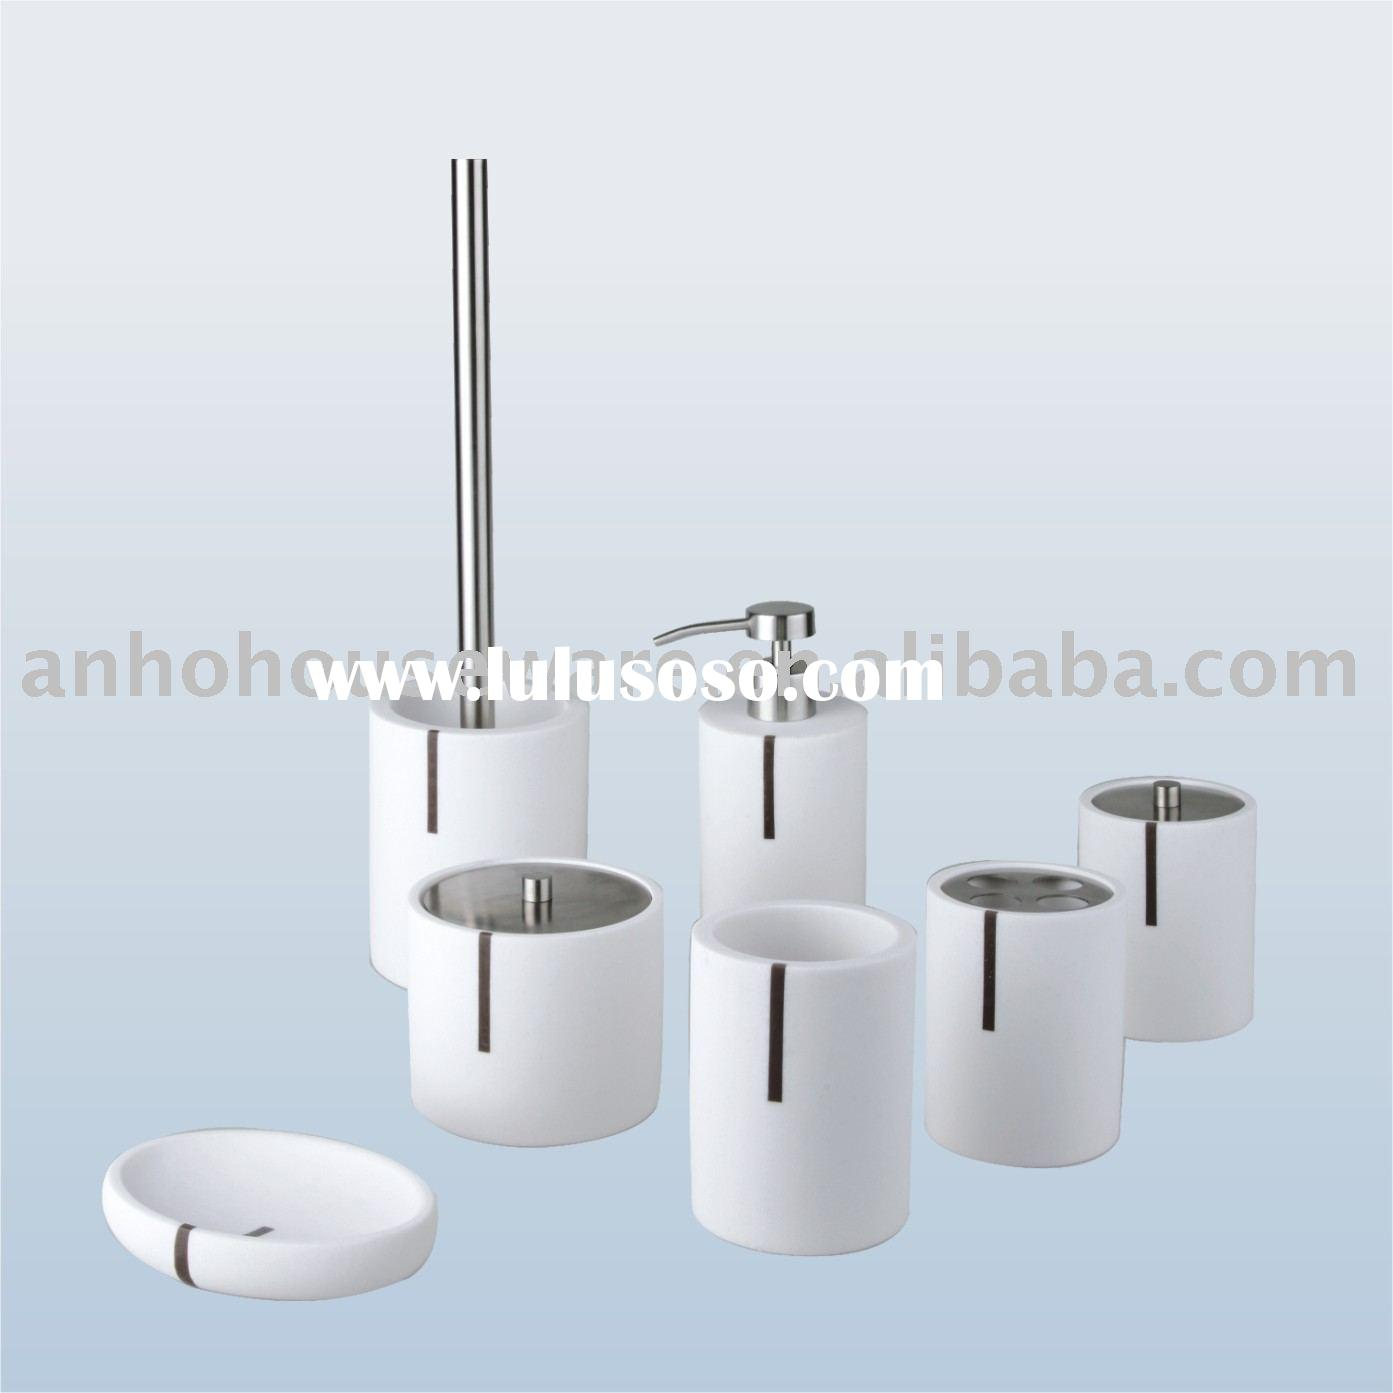 bath accessories, bath accessories Manufacturers in LuLuSoSo.com ...